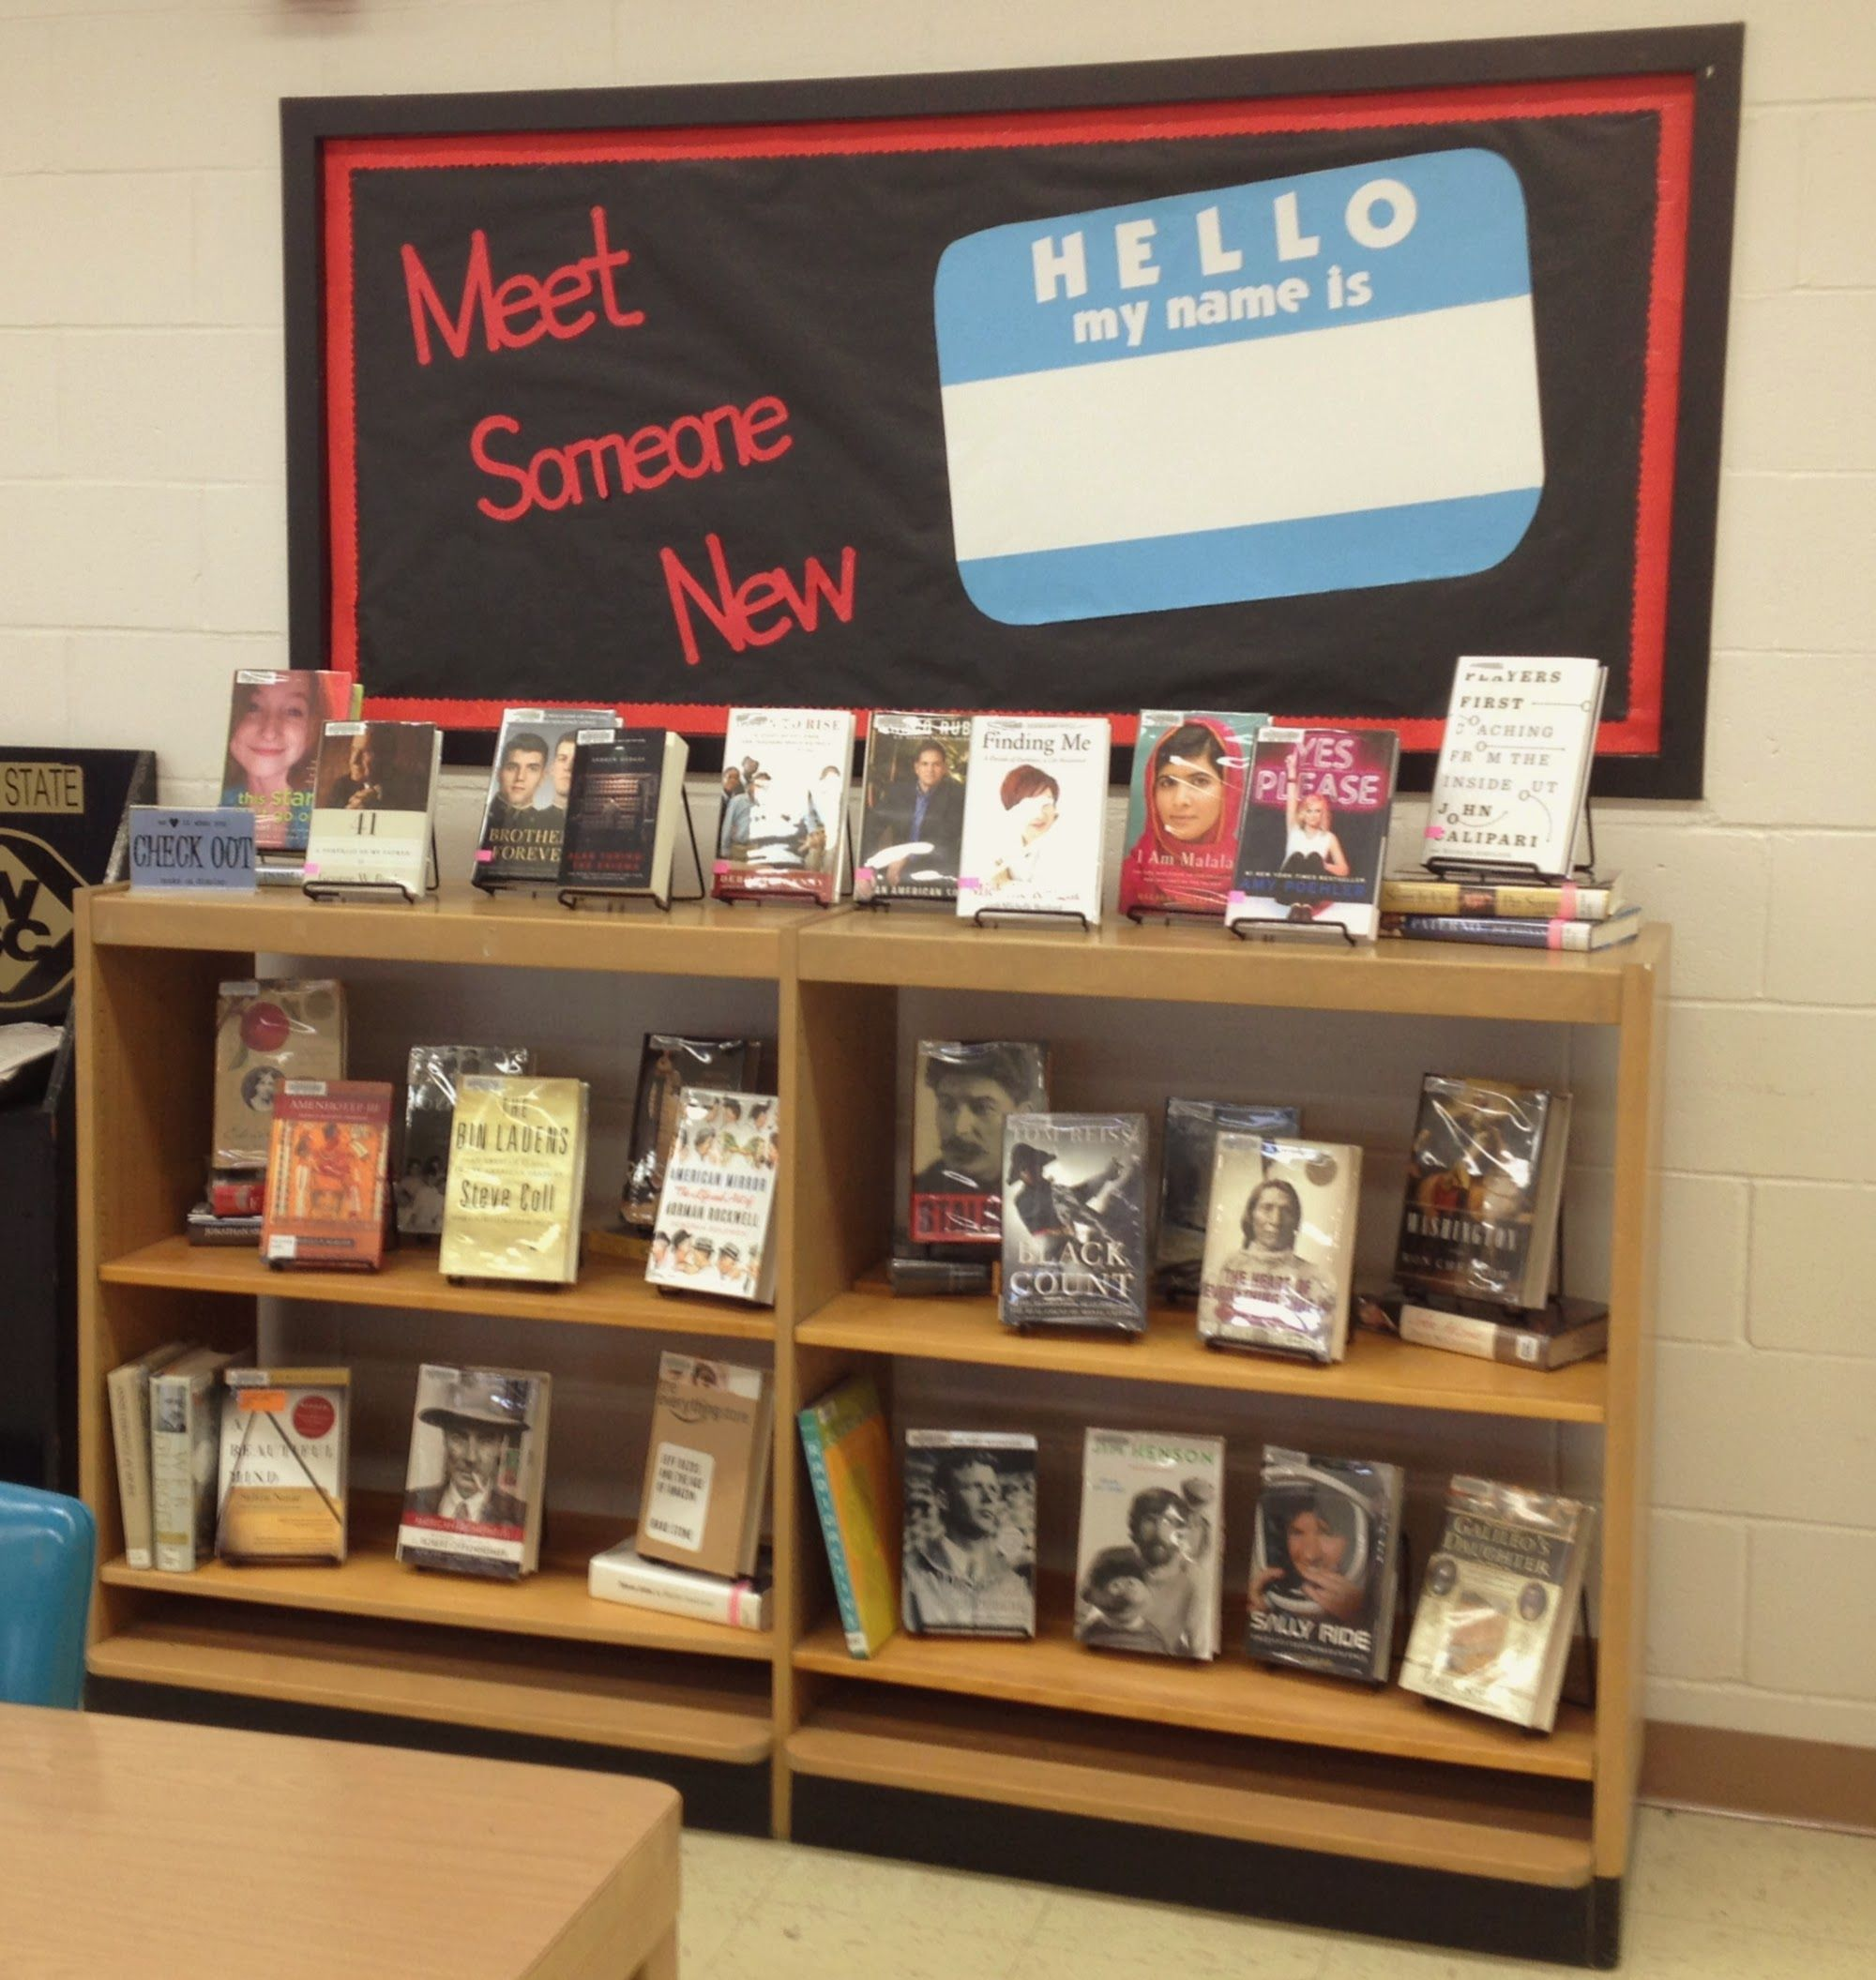 quot Meet Someone New quot Library Book Display Bulletin Board